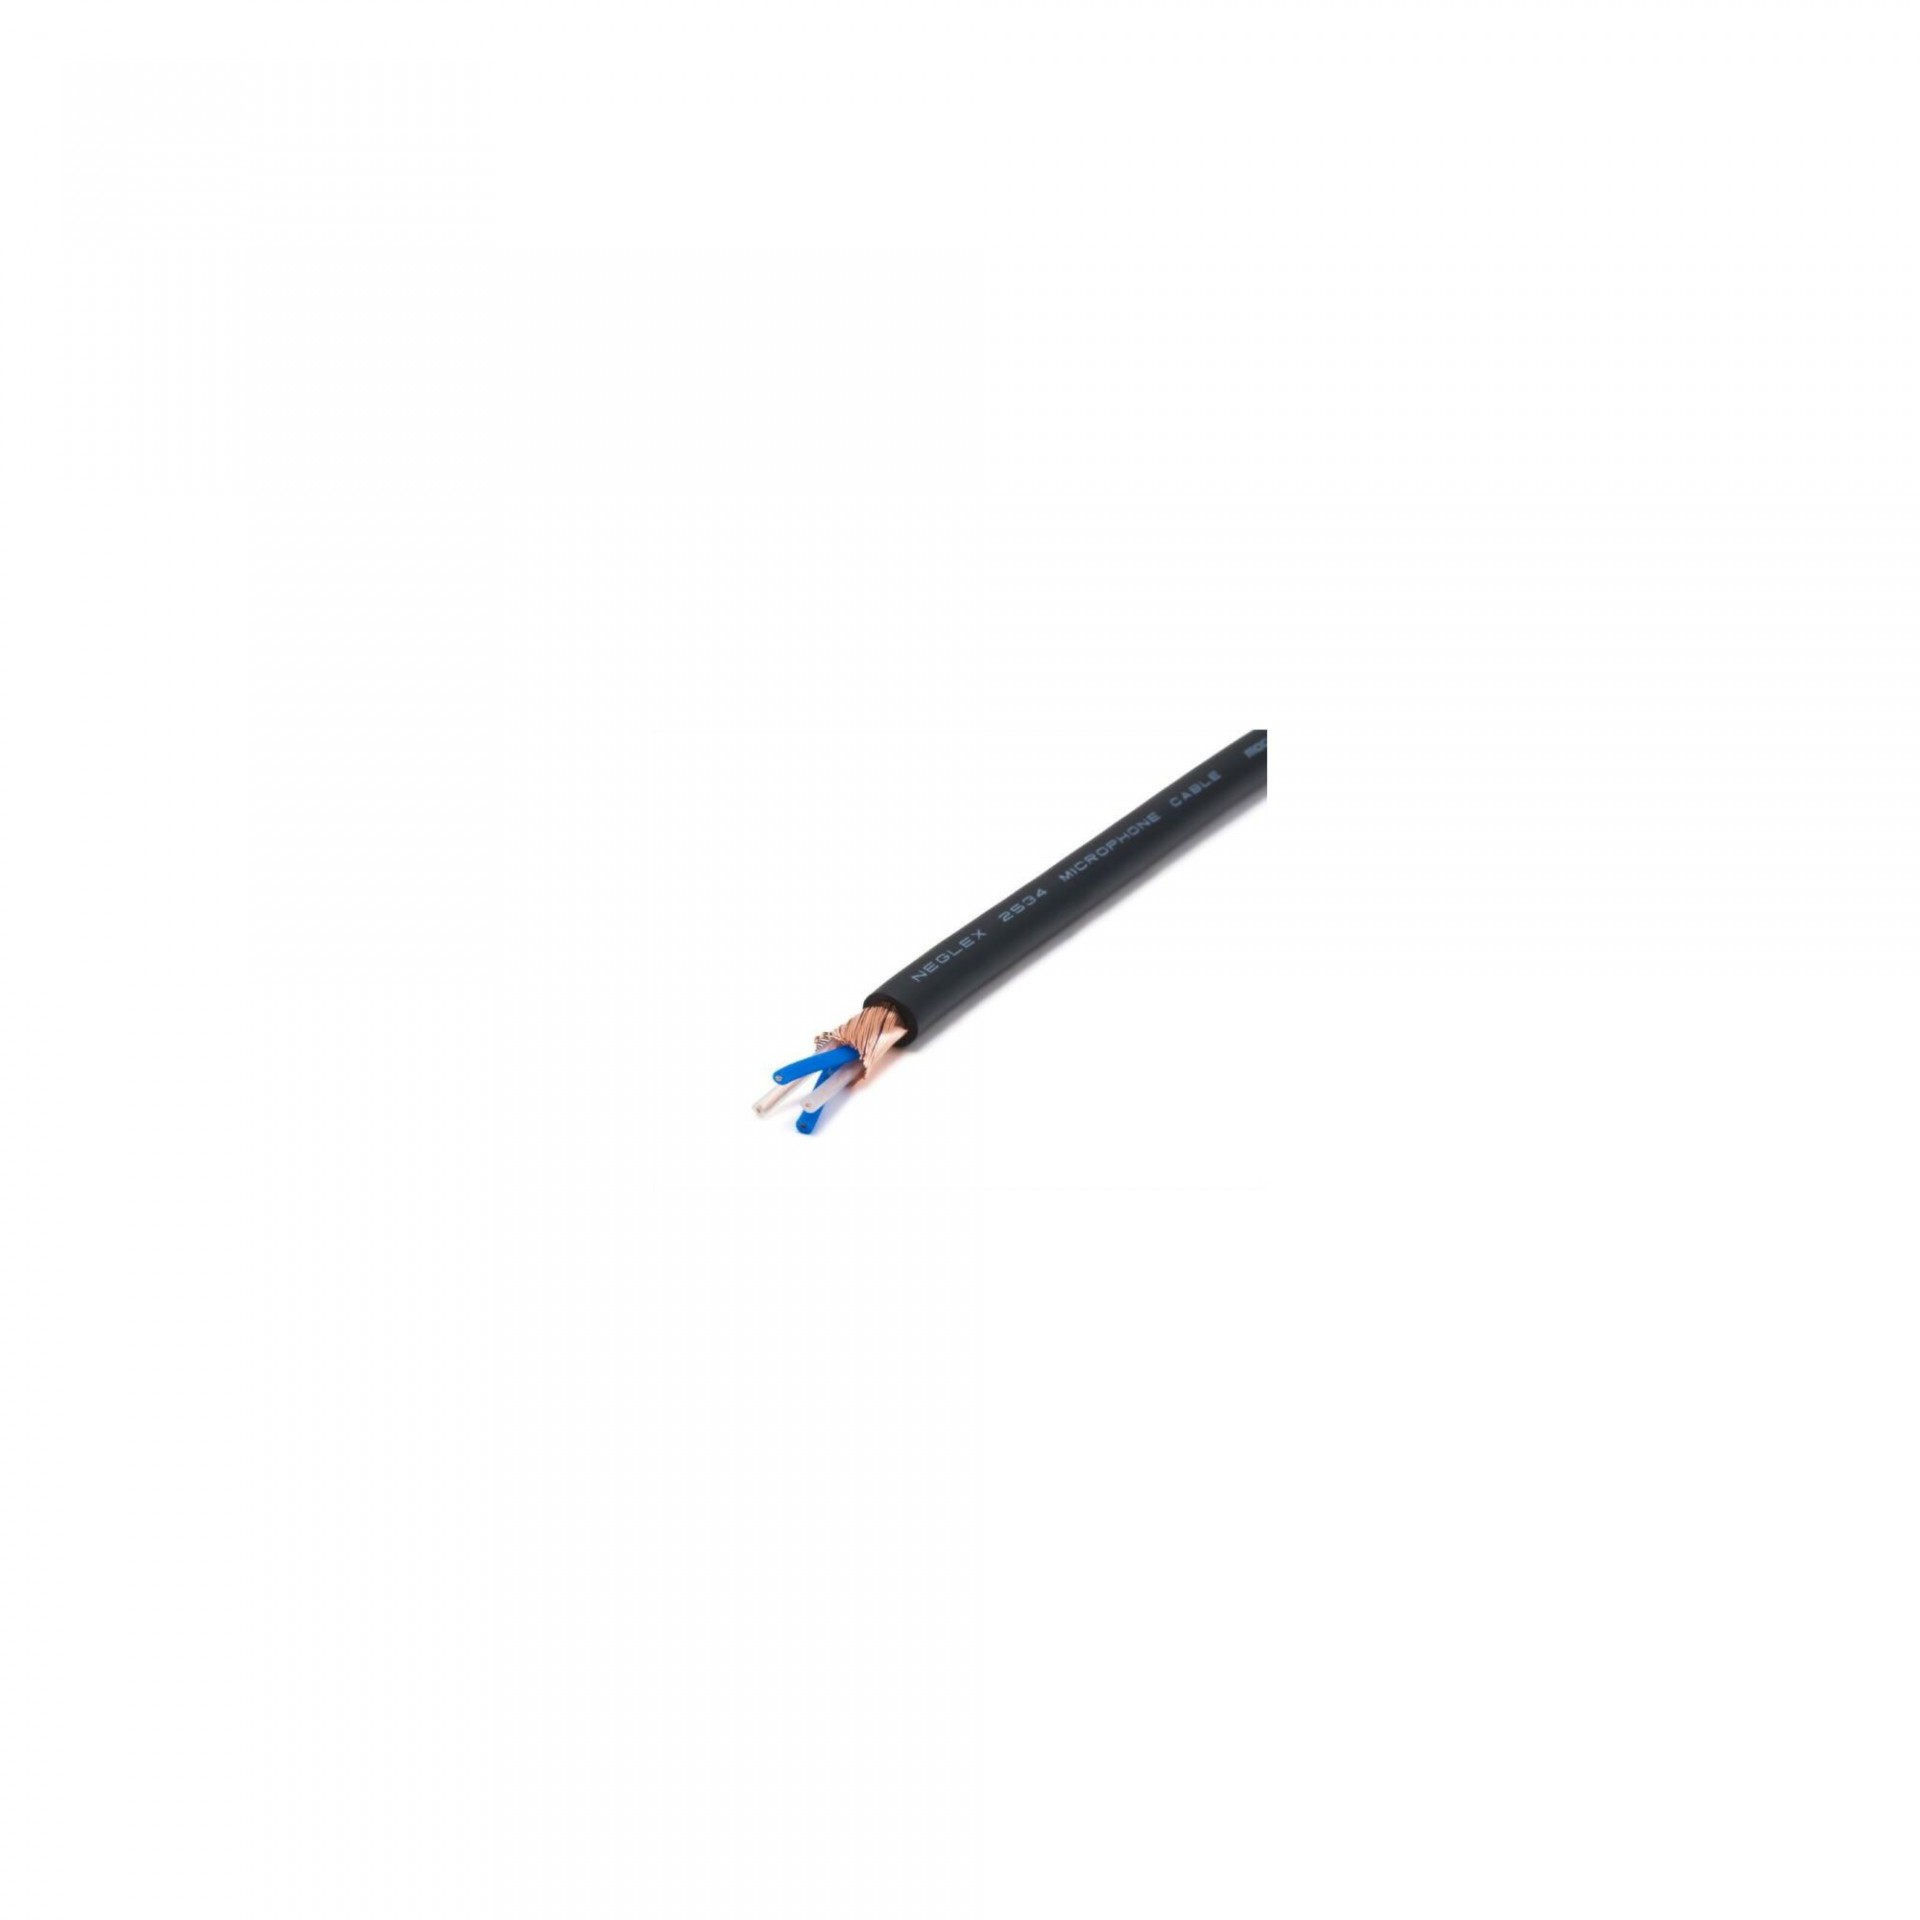 Mogami 2534 Microphone cable Black